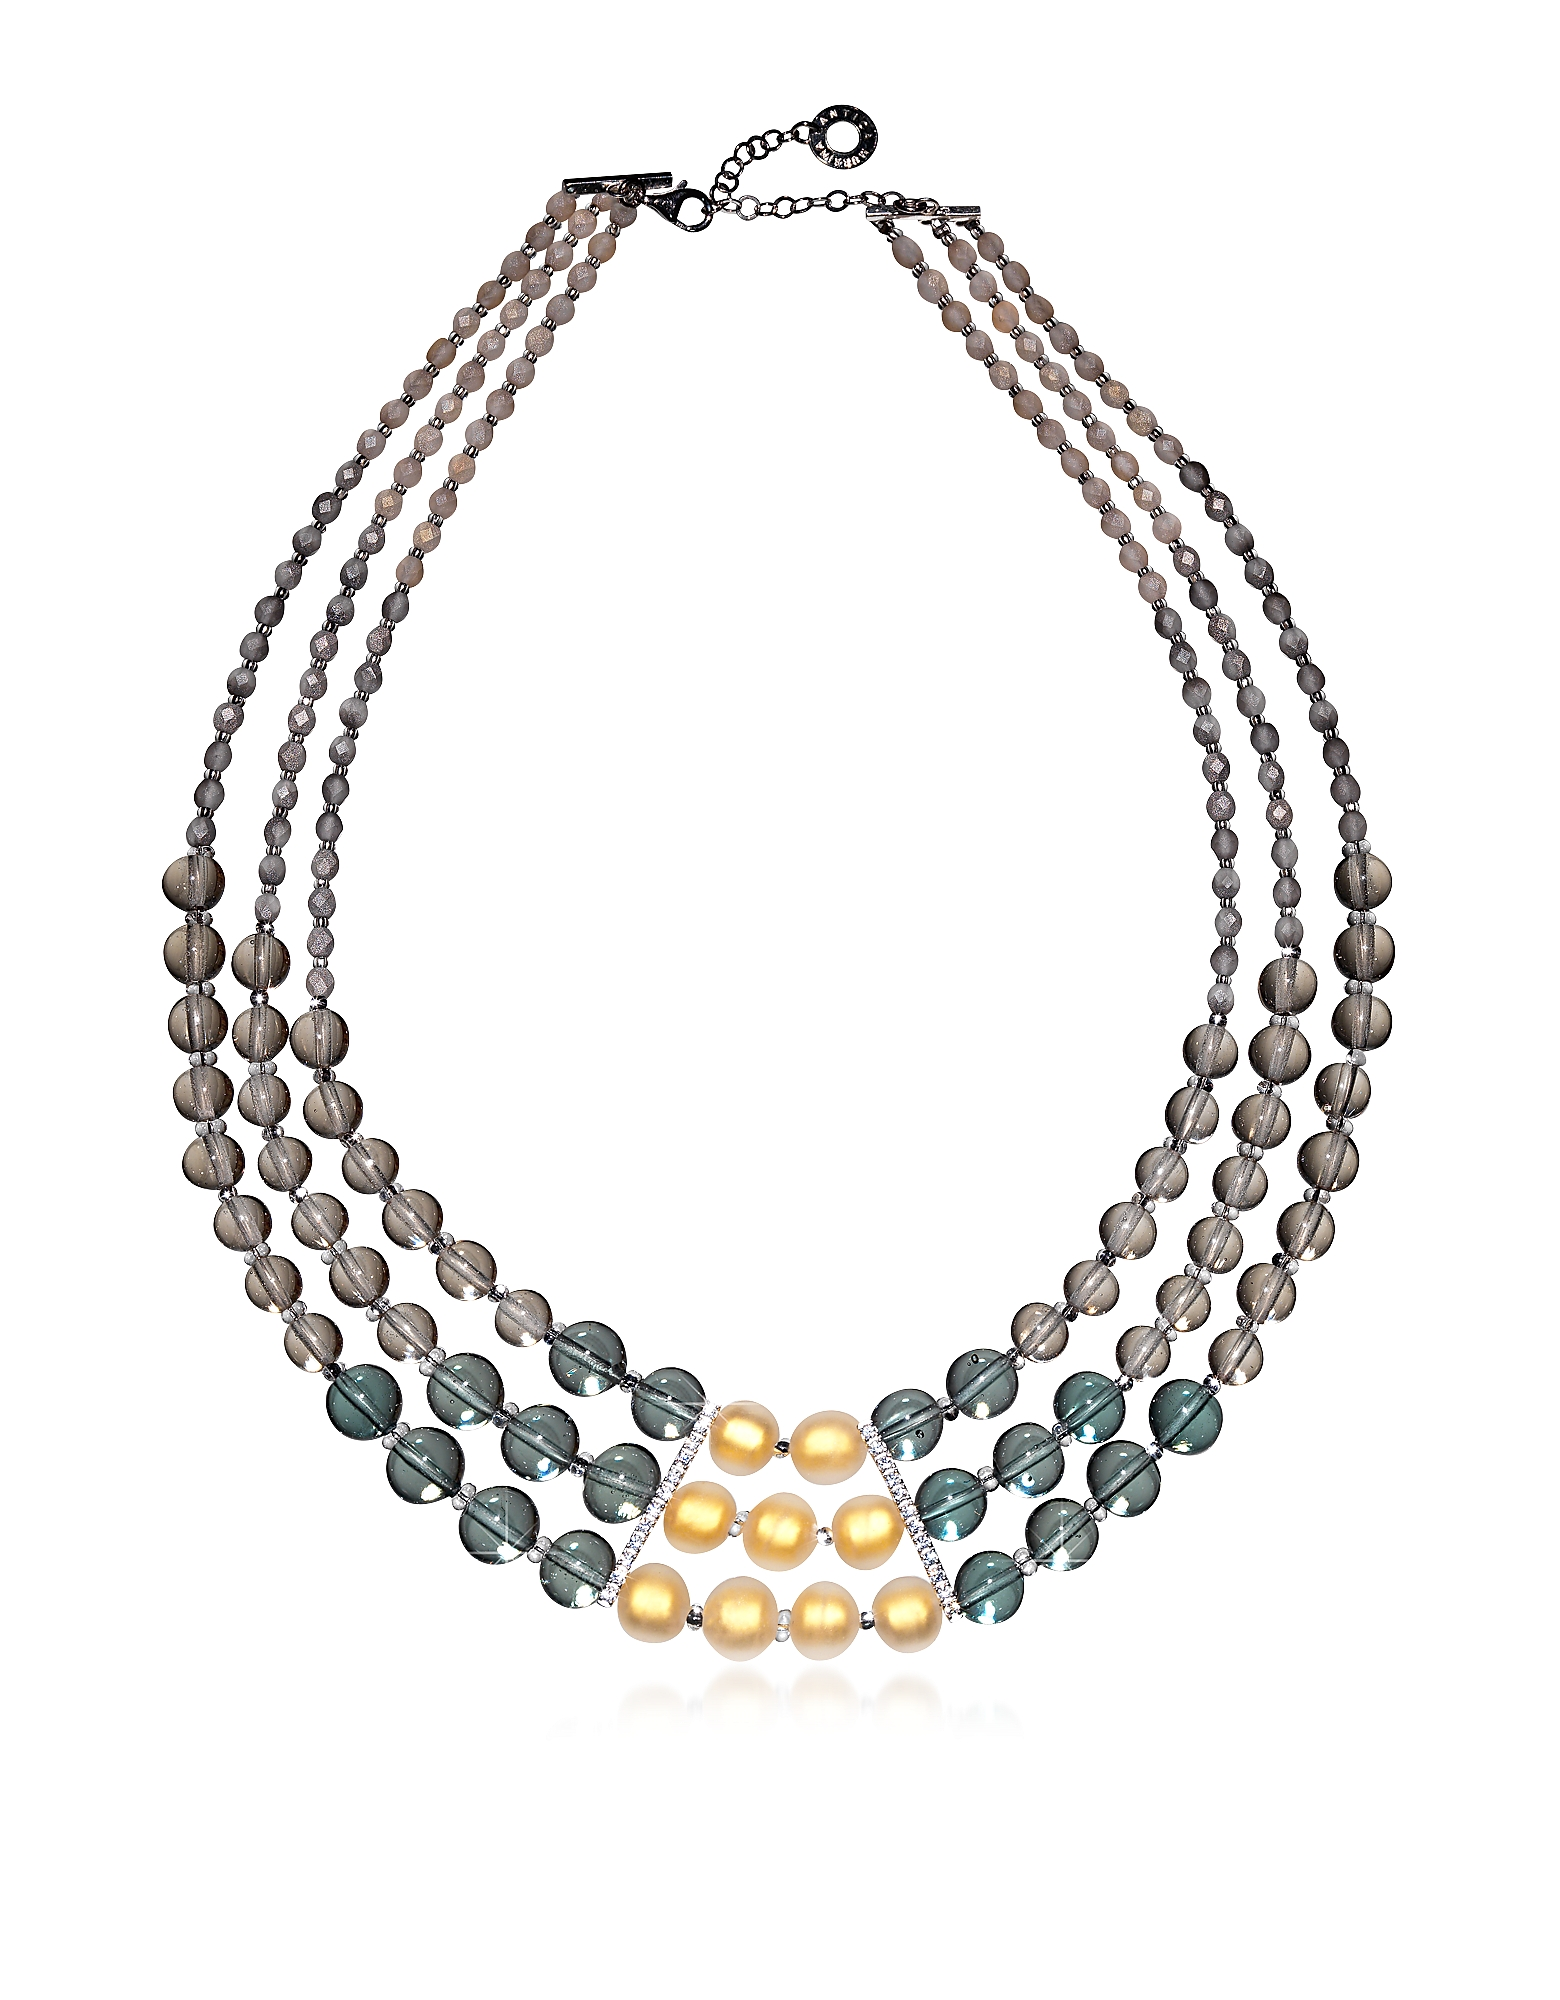 Image of Antica Murrina Designer Necklaces, Atelier Nuance - Grey & Amber Murano Glass Choker